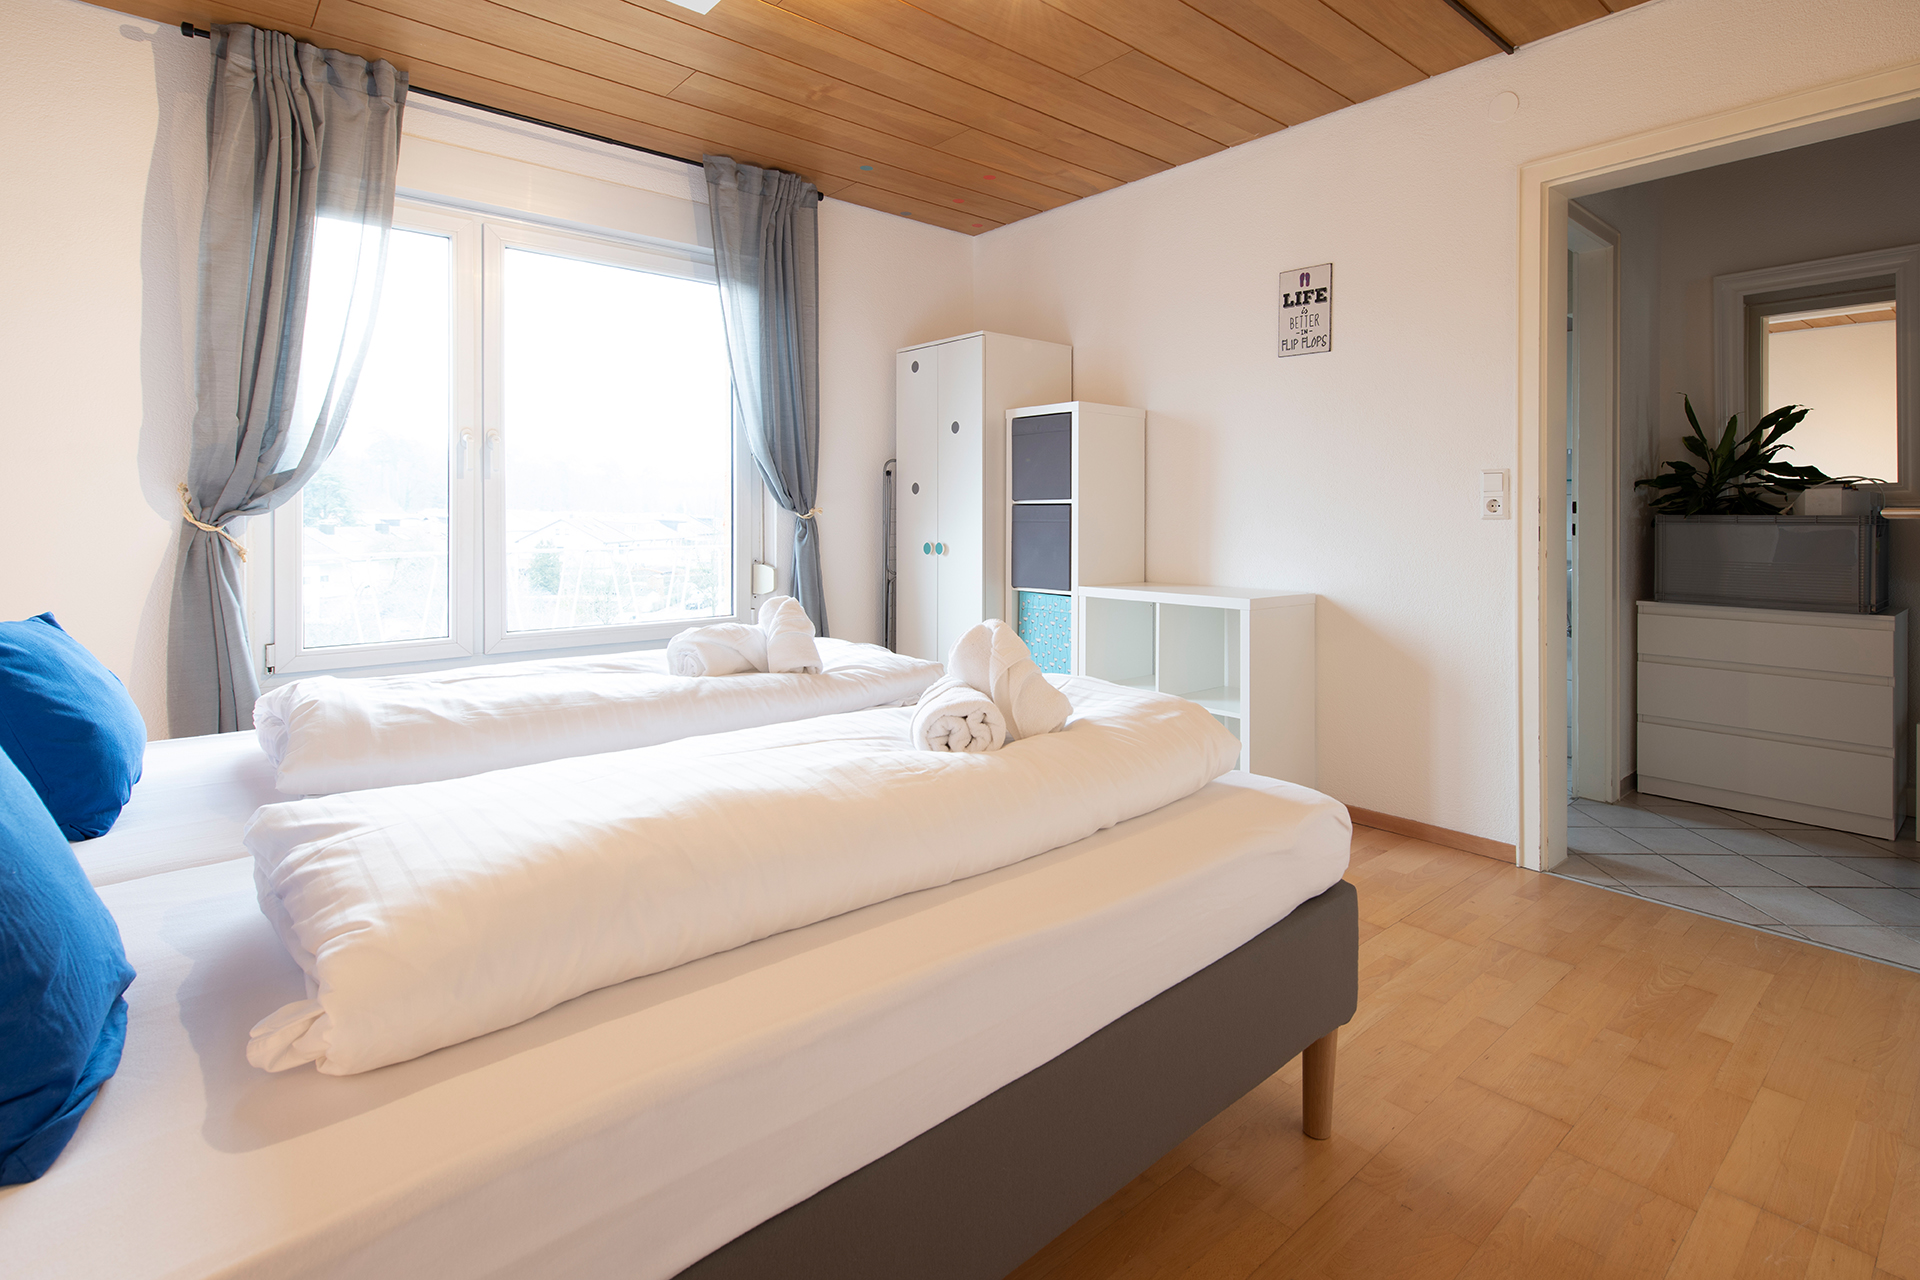 Holiday apartments on Lake Constance: Friedrichshafen - Bedroom